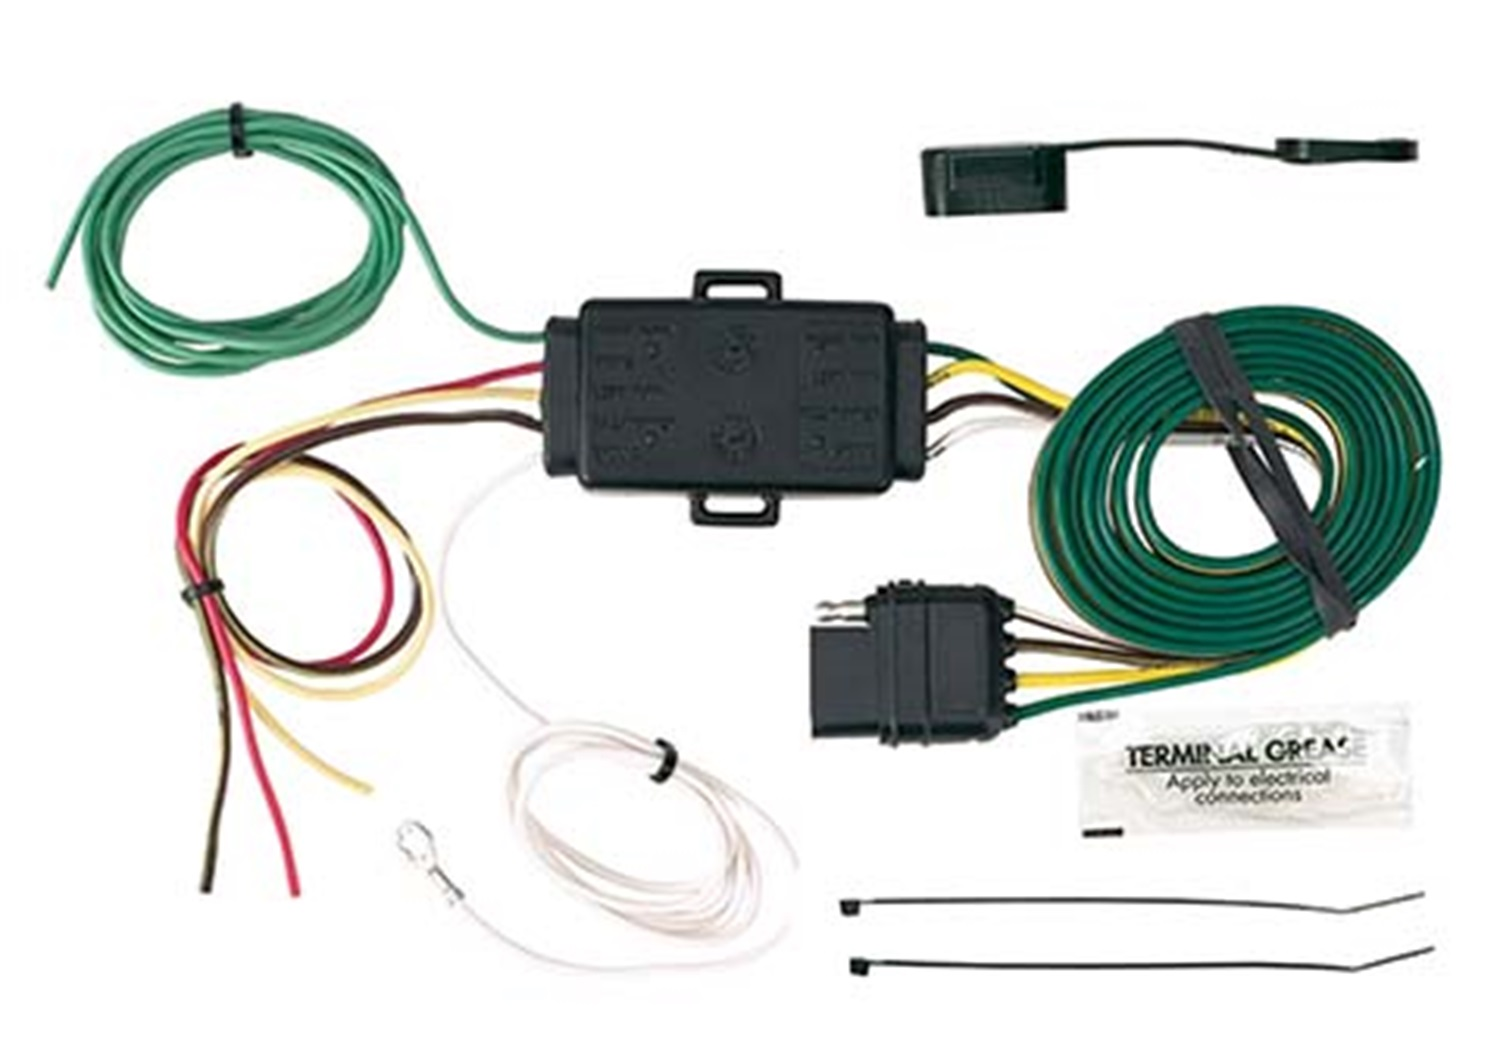 Hopkins Tail Light Converter Wiring Diagram Led Trailer Lights On For Towing Solutions Thrifty Walmart Com Rh Connector Ford Ranger